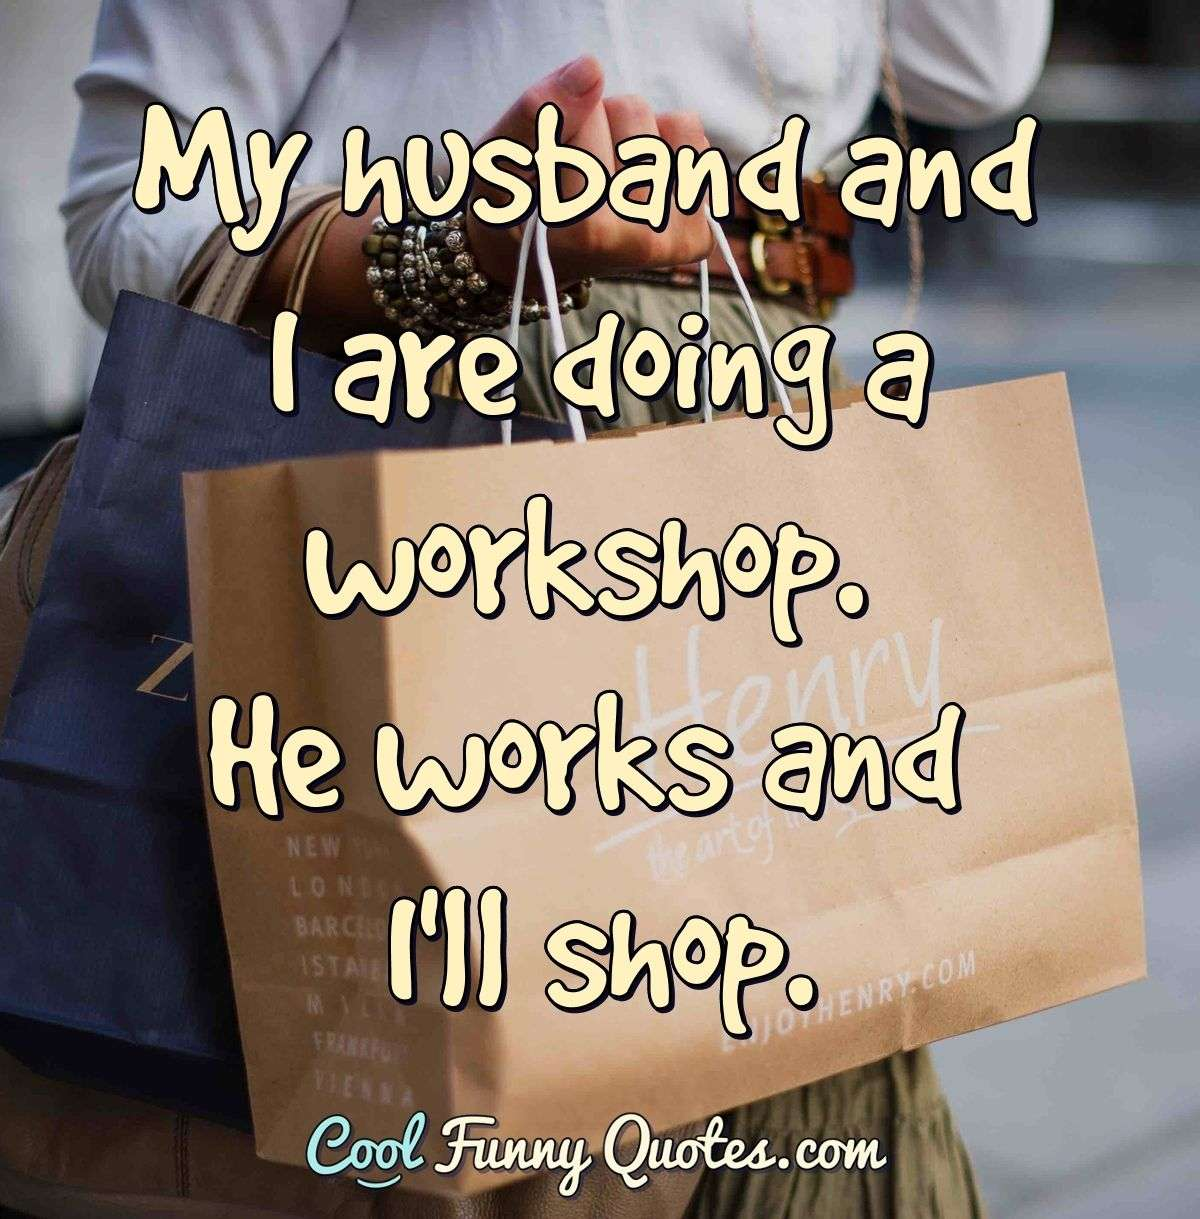 My husband and I are doing a workshop. He works and I'll shop. - Anonymous